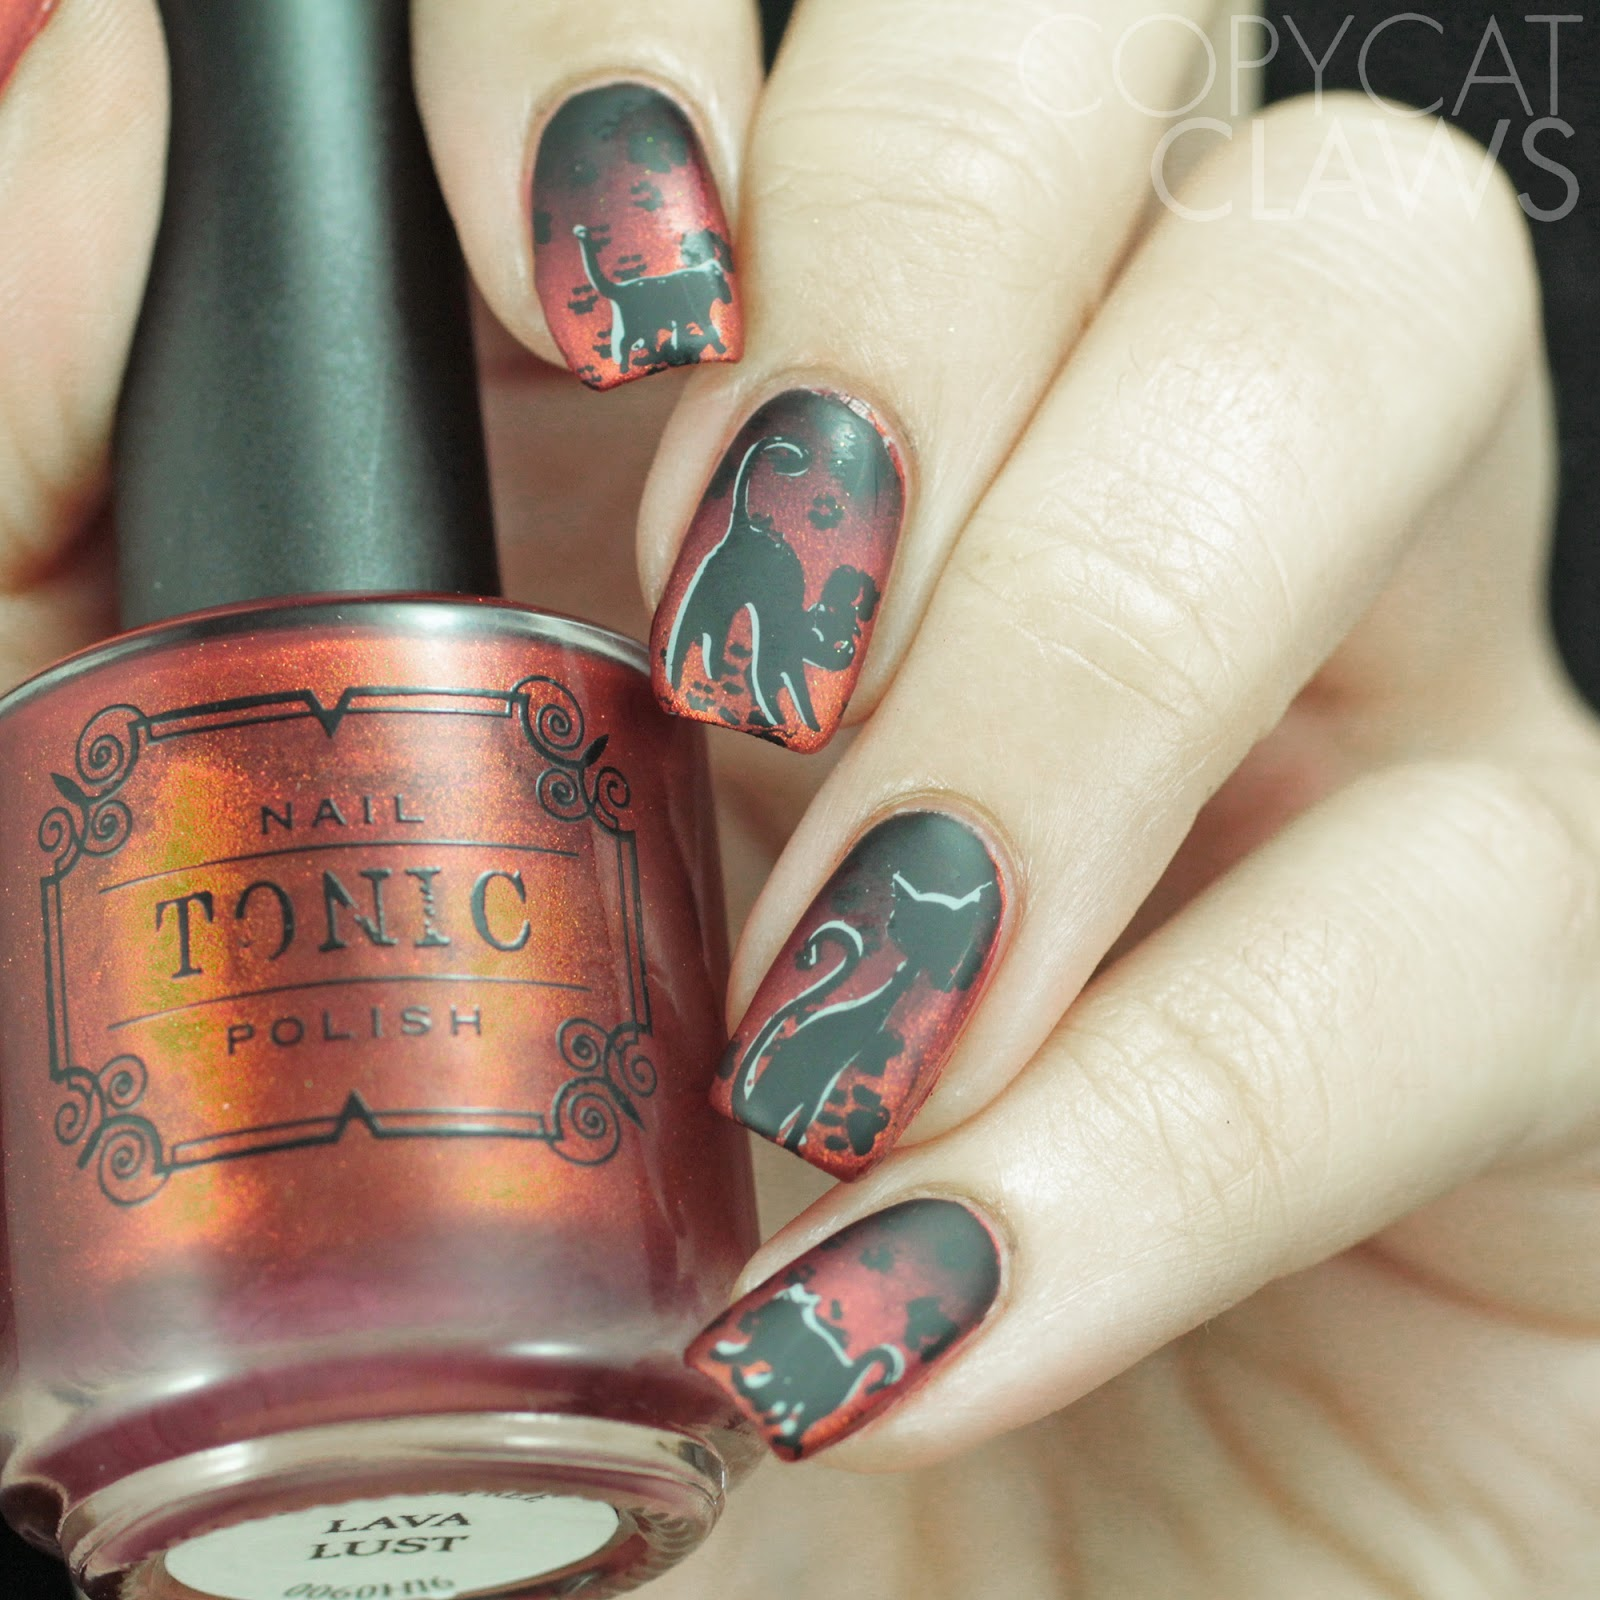 Copycat Claws: 26 Great Nail Art Ideas - Friday The 13th